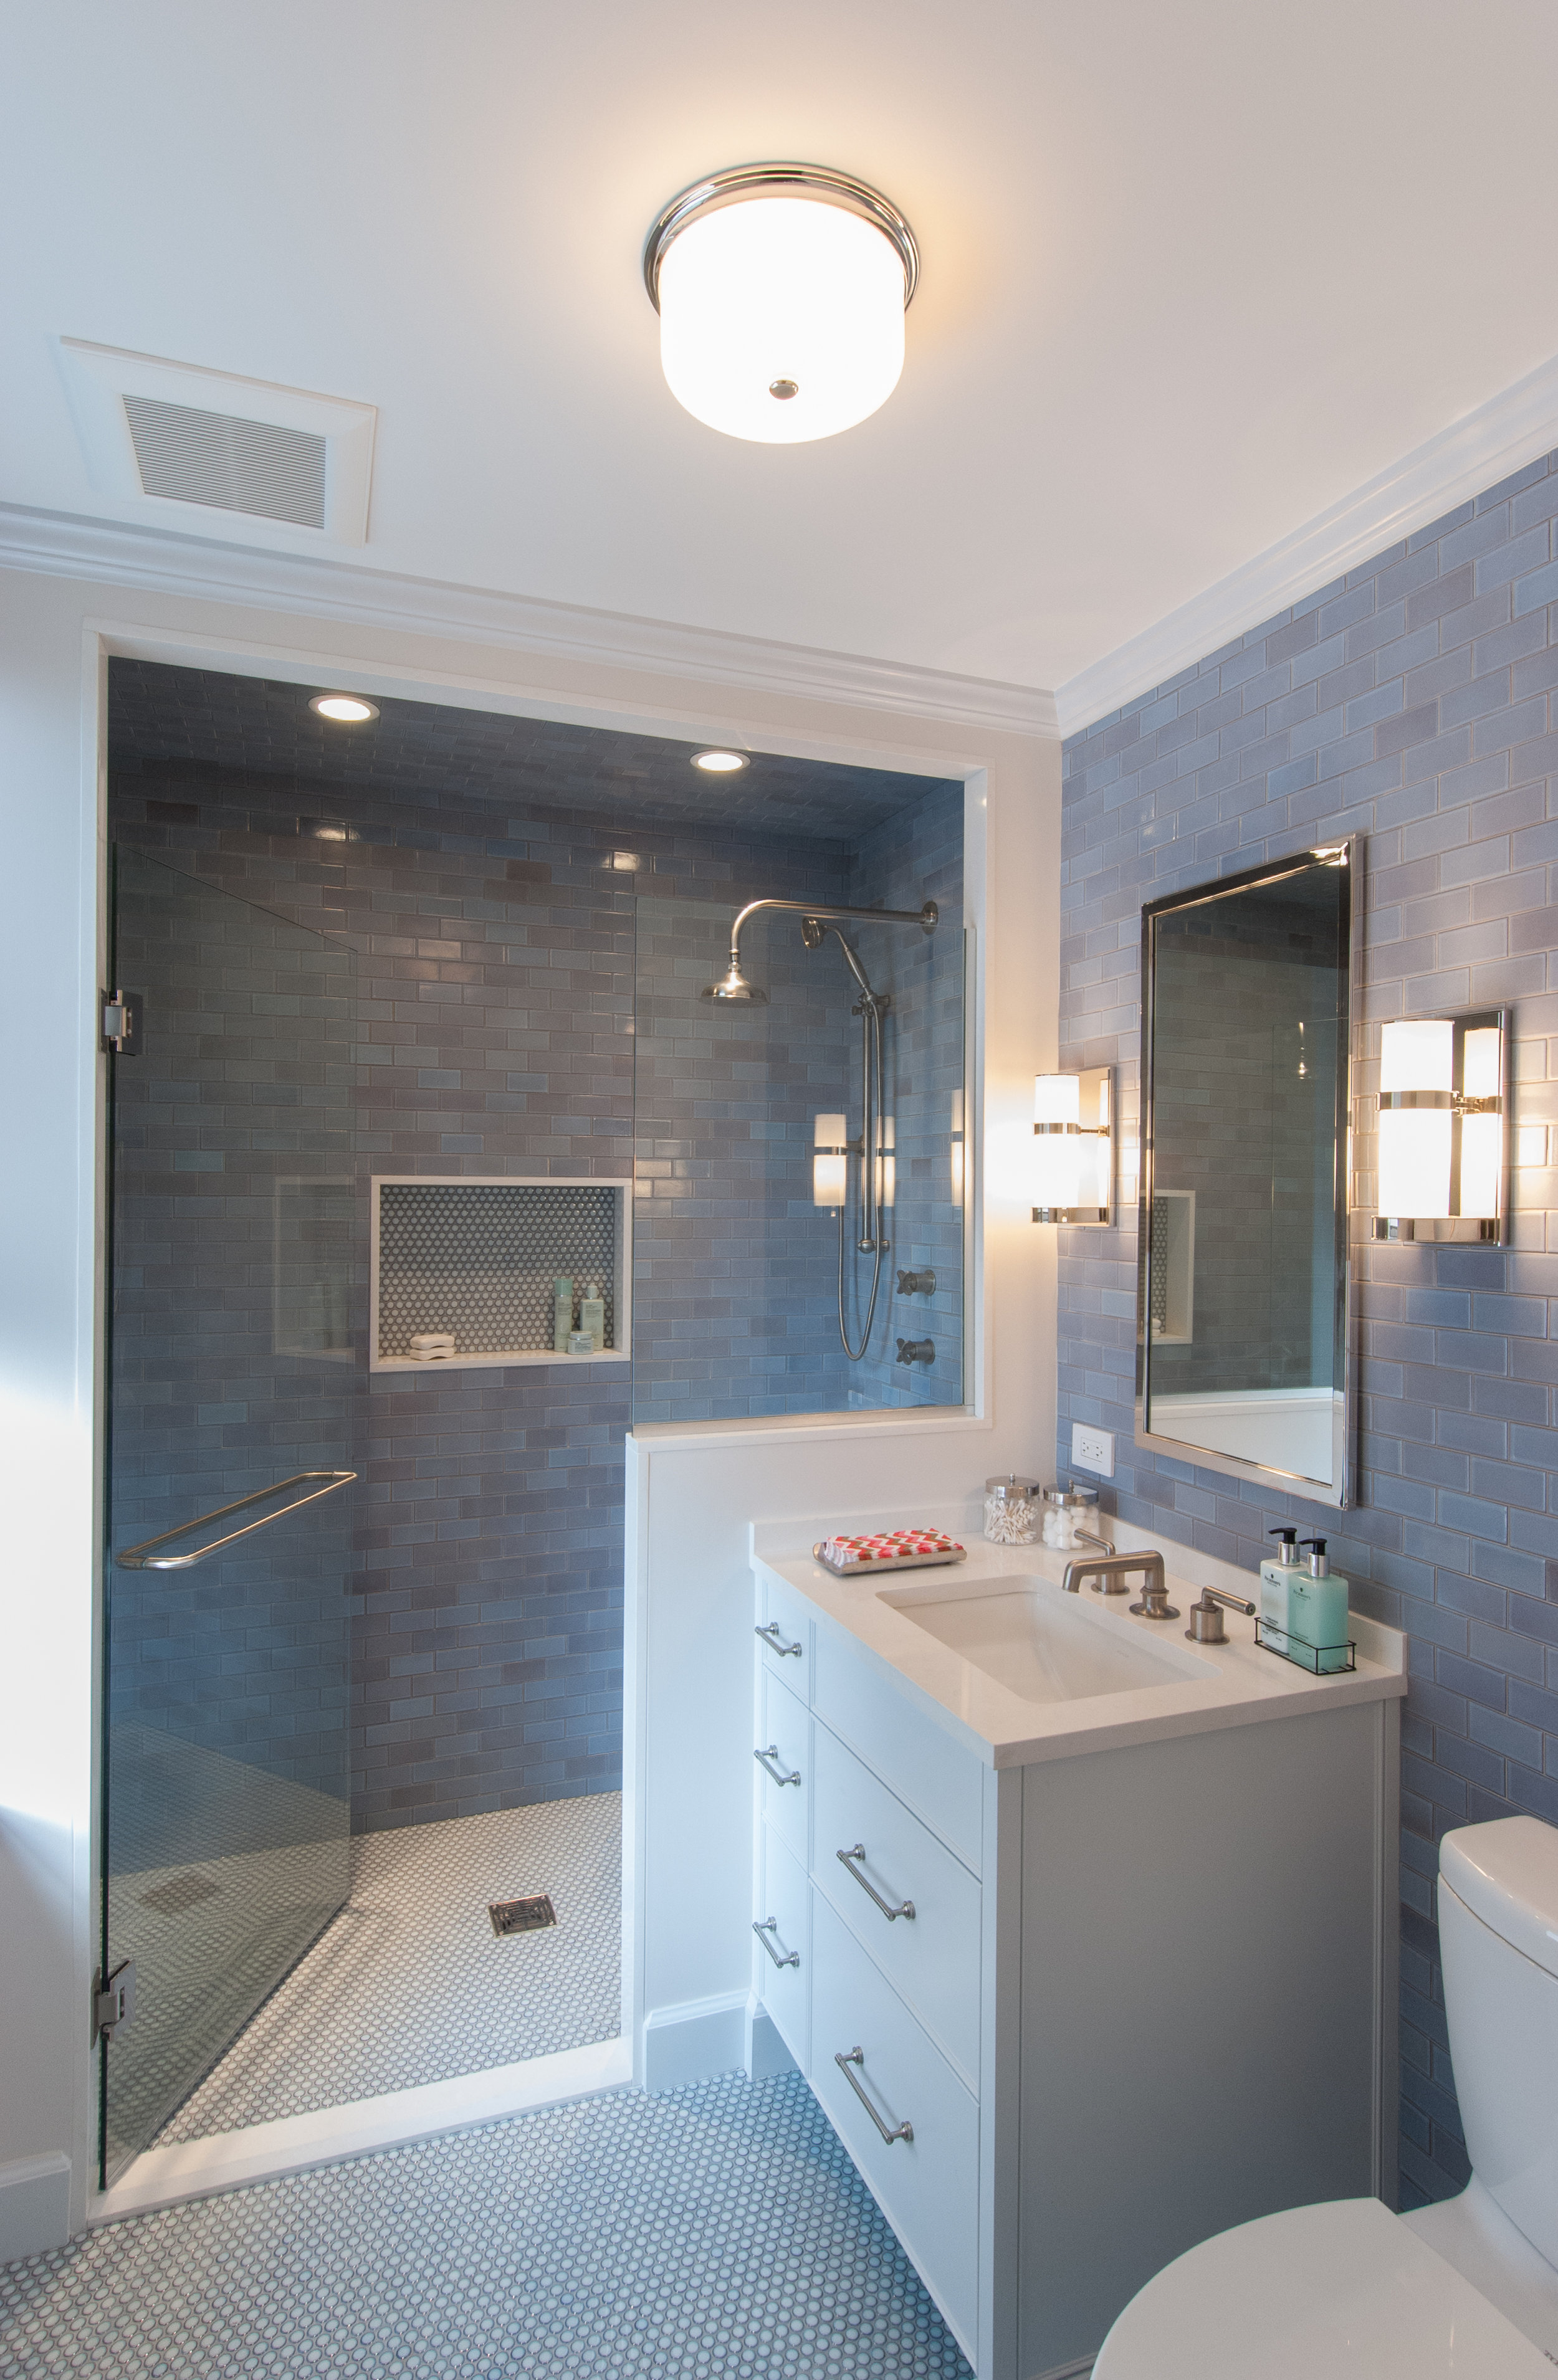 We worked closely with the owner to select the fixtures in all of the rooms. Plumbing fixtures in the master bath are by Waterworks. Tile is Heath Ceramics.